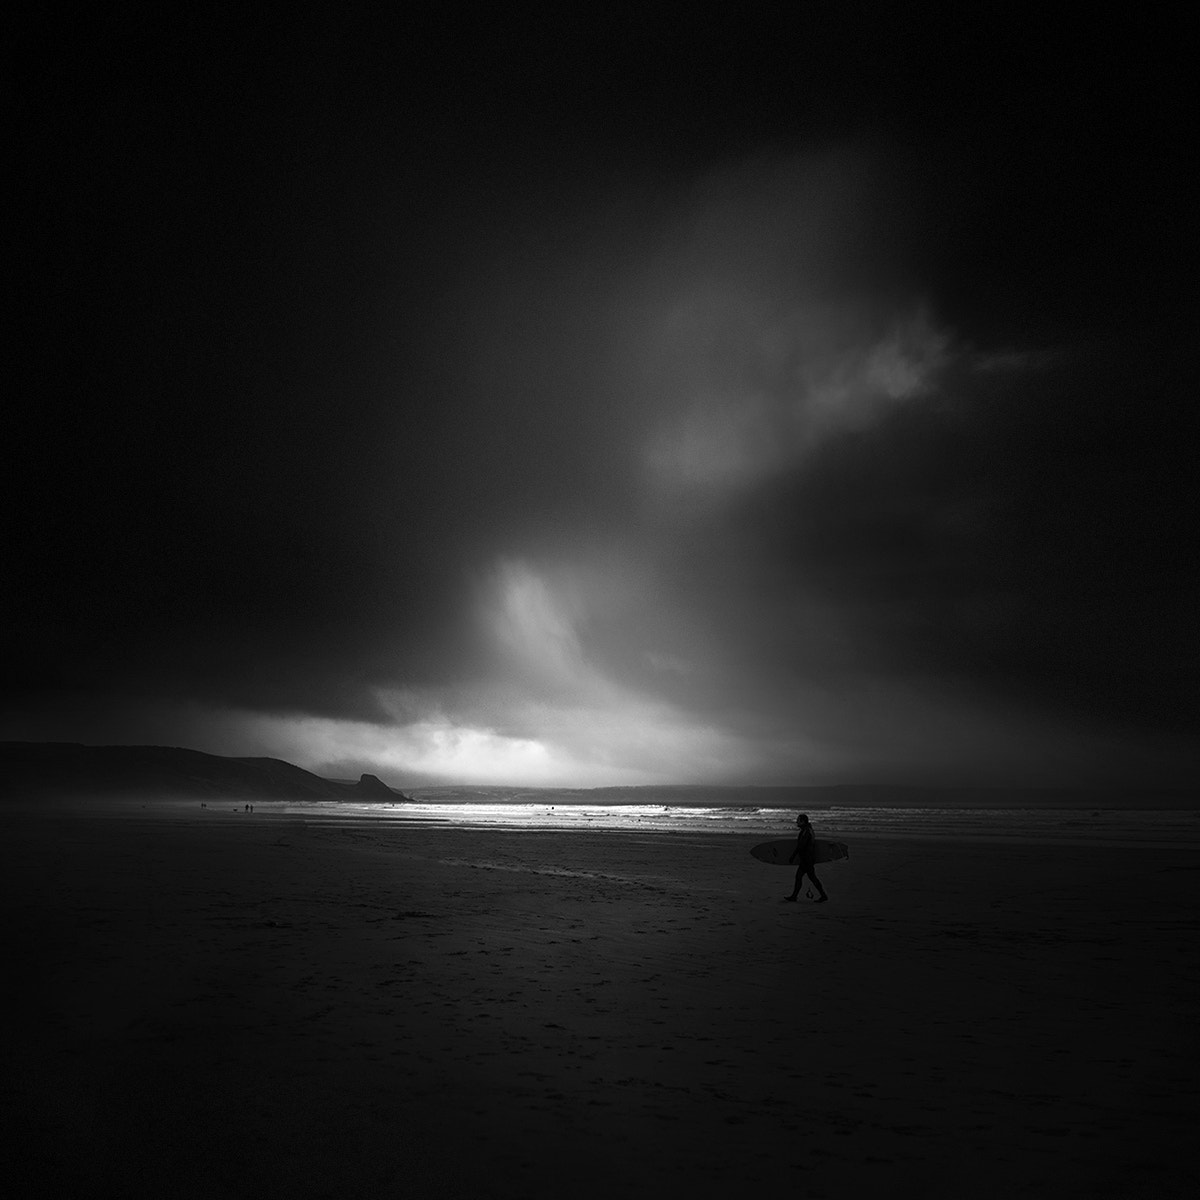 Photograph ≈ surfer by Andy Lee on 500px